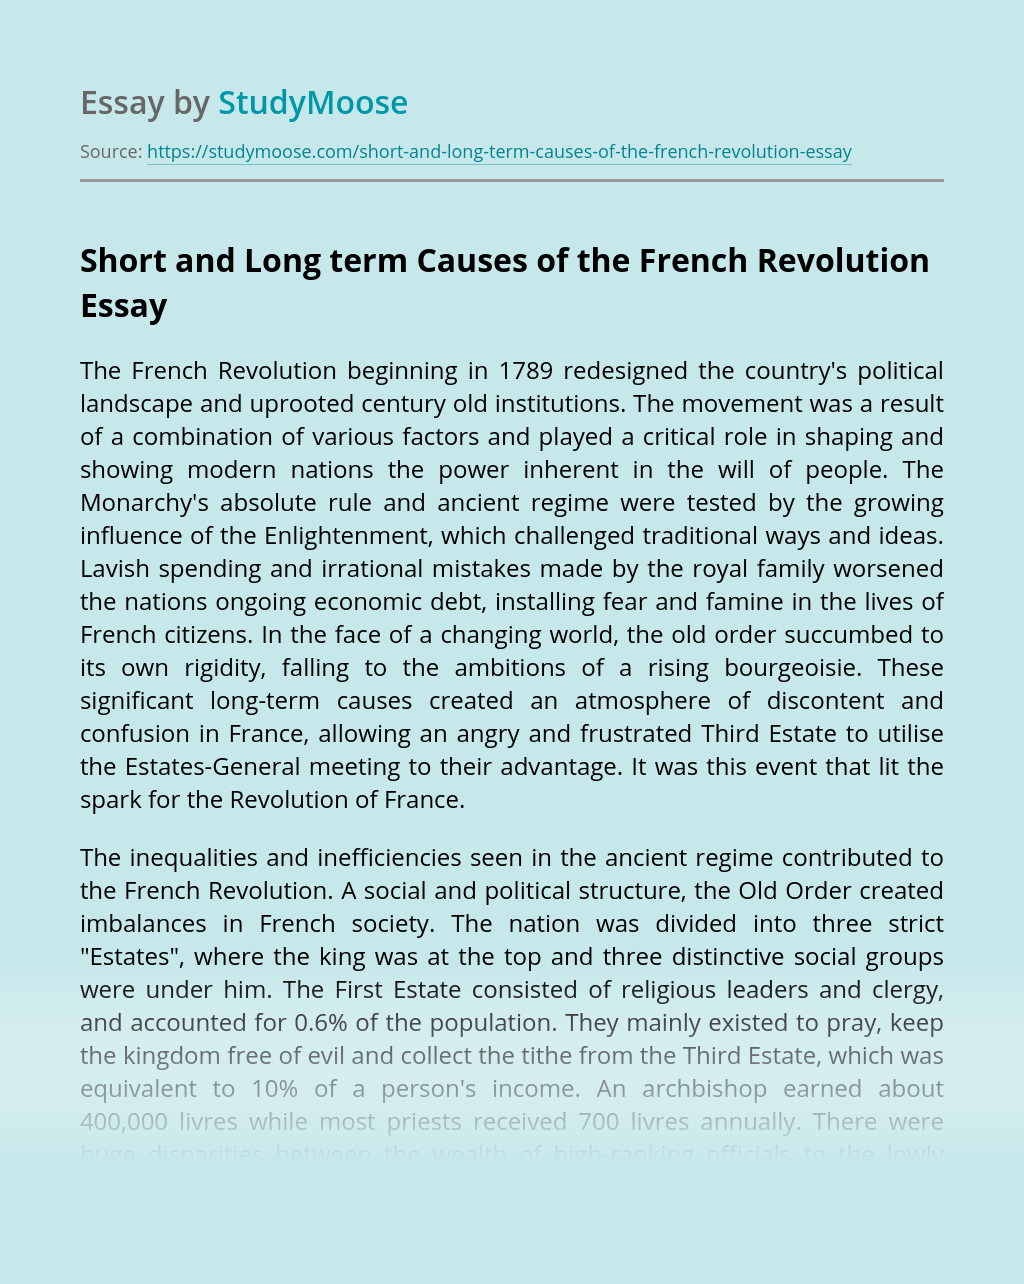 Short and Long term Causes of the French Revolution